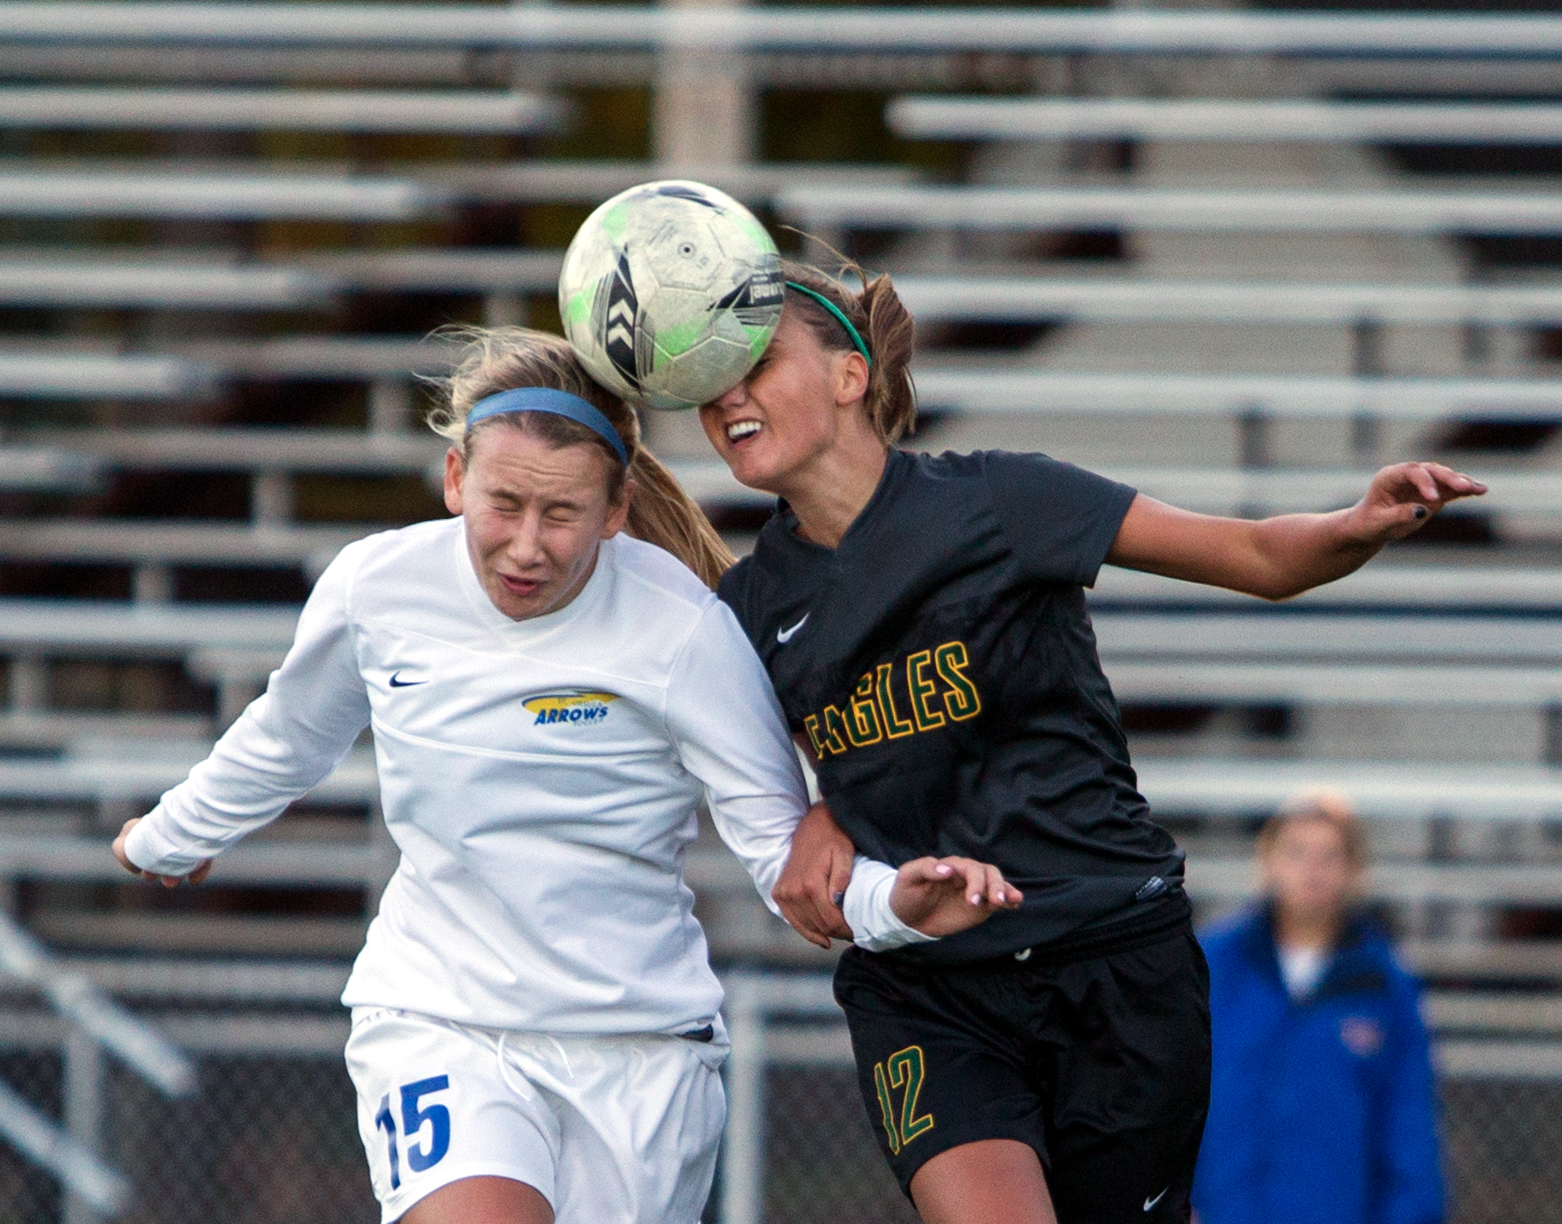 St. Ursula's Grace Turski (15) jumps for a header against Clay High School's Hannah Gerrard during the Division I girls soccer district tournament at Northview High School Monday, Oct. 24, 2016.